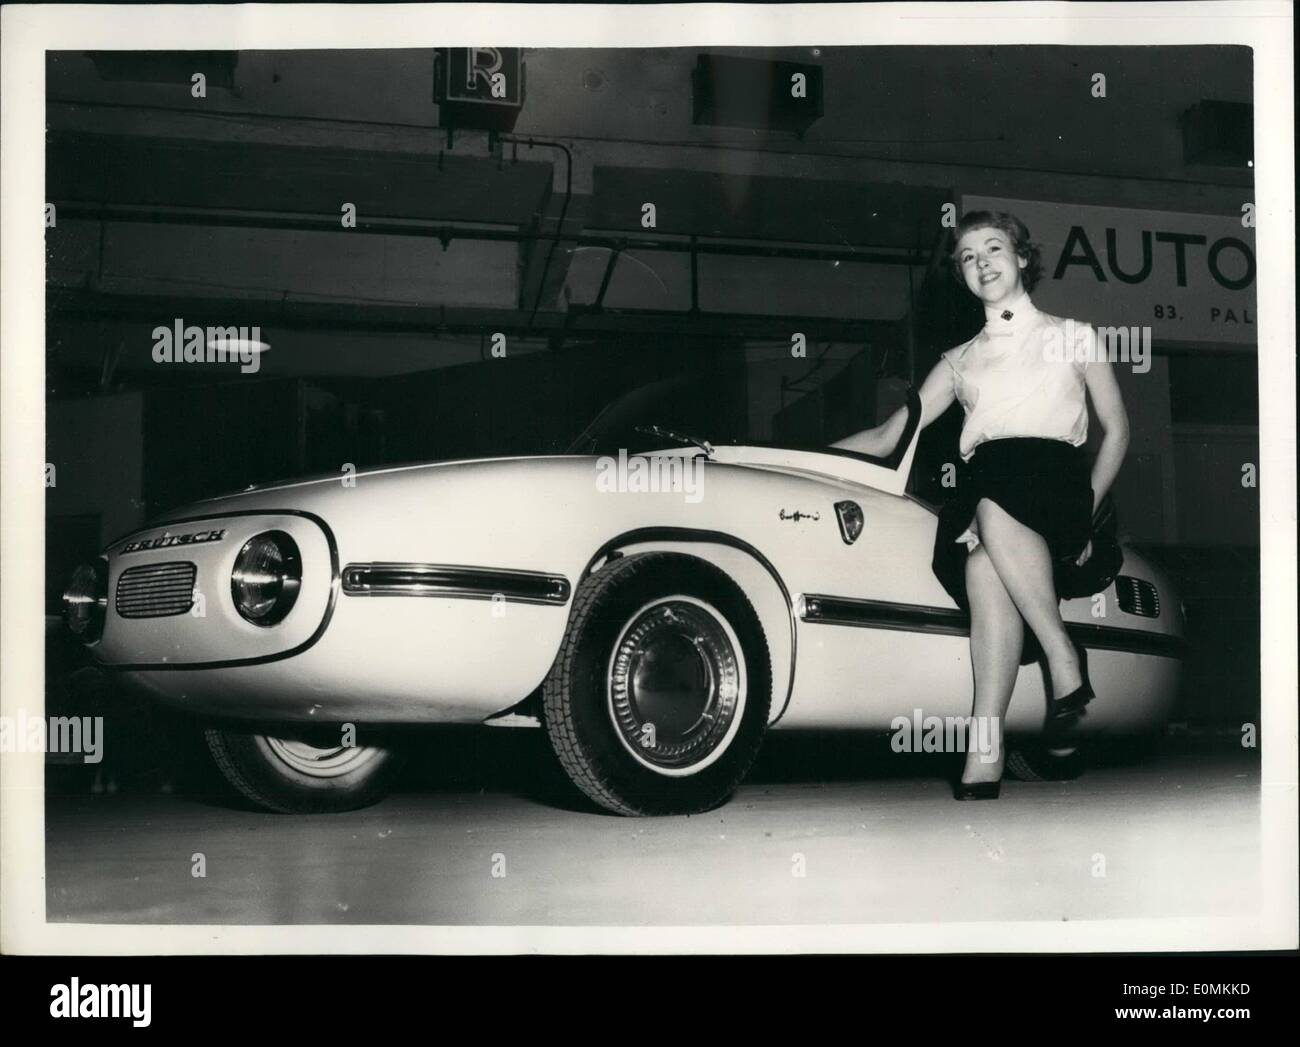 Nov. 11, 1955 - New German Designed Three Wheeler - Constructed In England At Cycle And Motor Cycle Show: Photo Shows Jill Hinkley a model - seated an the new Breutsch 300 Mk.1 - three wheeler - three seater car - which will be powered with a villagers 250 two stroke twin - with cursing speed of 50 m.p.h. at 60 - 65 m.p.g. priced at 98 inc; P.T. the car was designed originally in Stuttgart - and is to be made in England (Nottingham under licence) - Stock Image